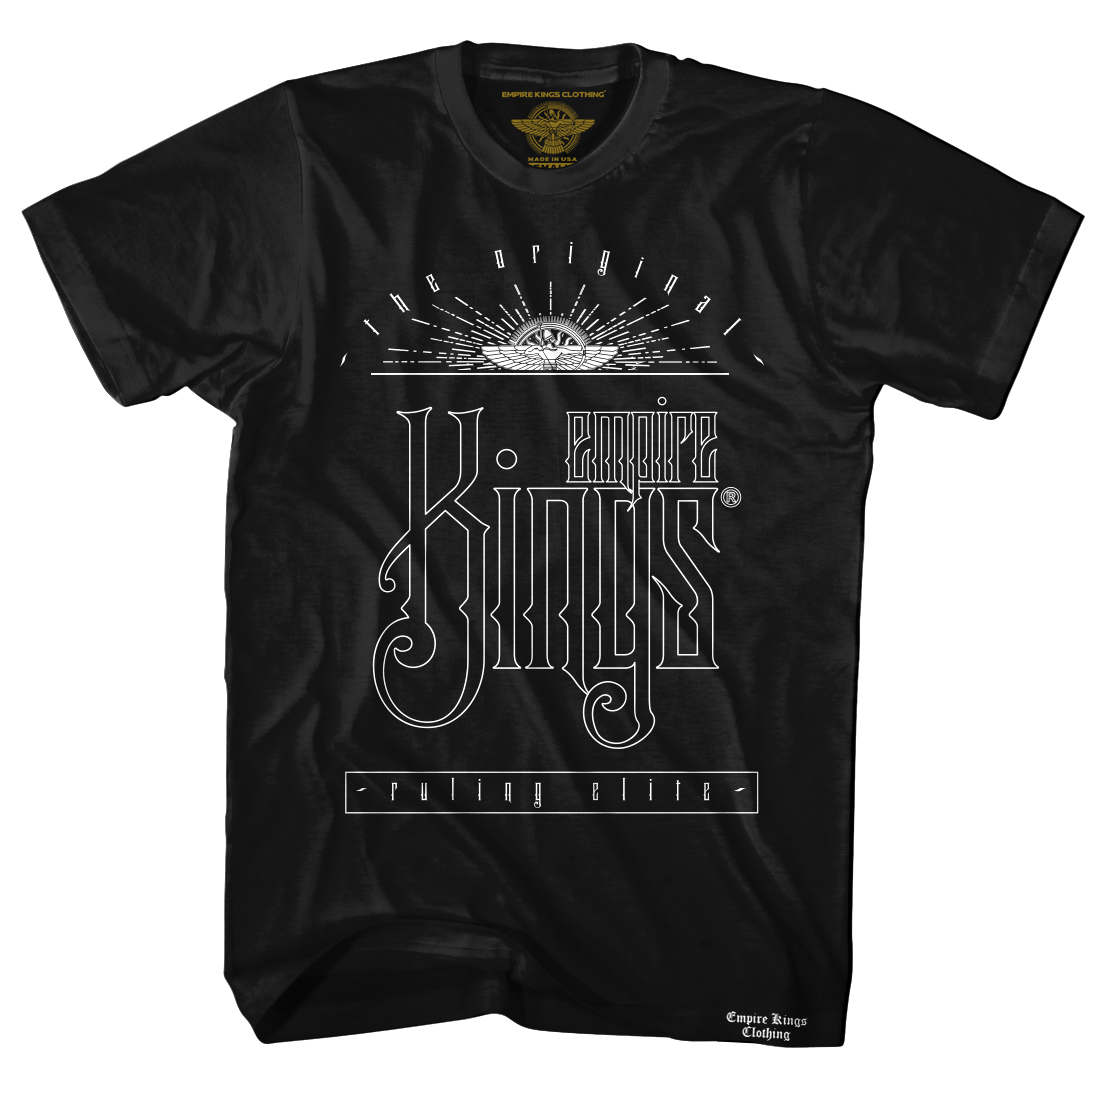 Empire Kings Clothing Clean